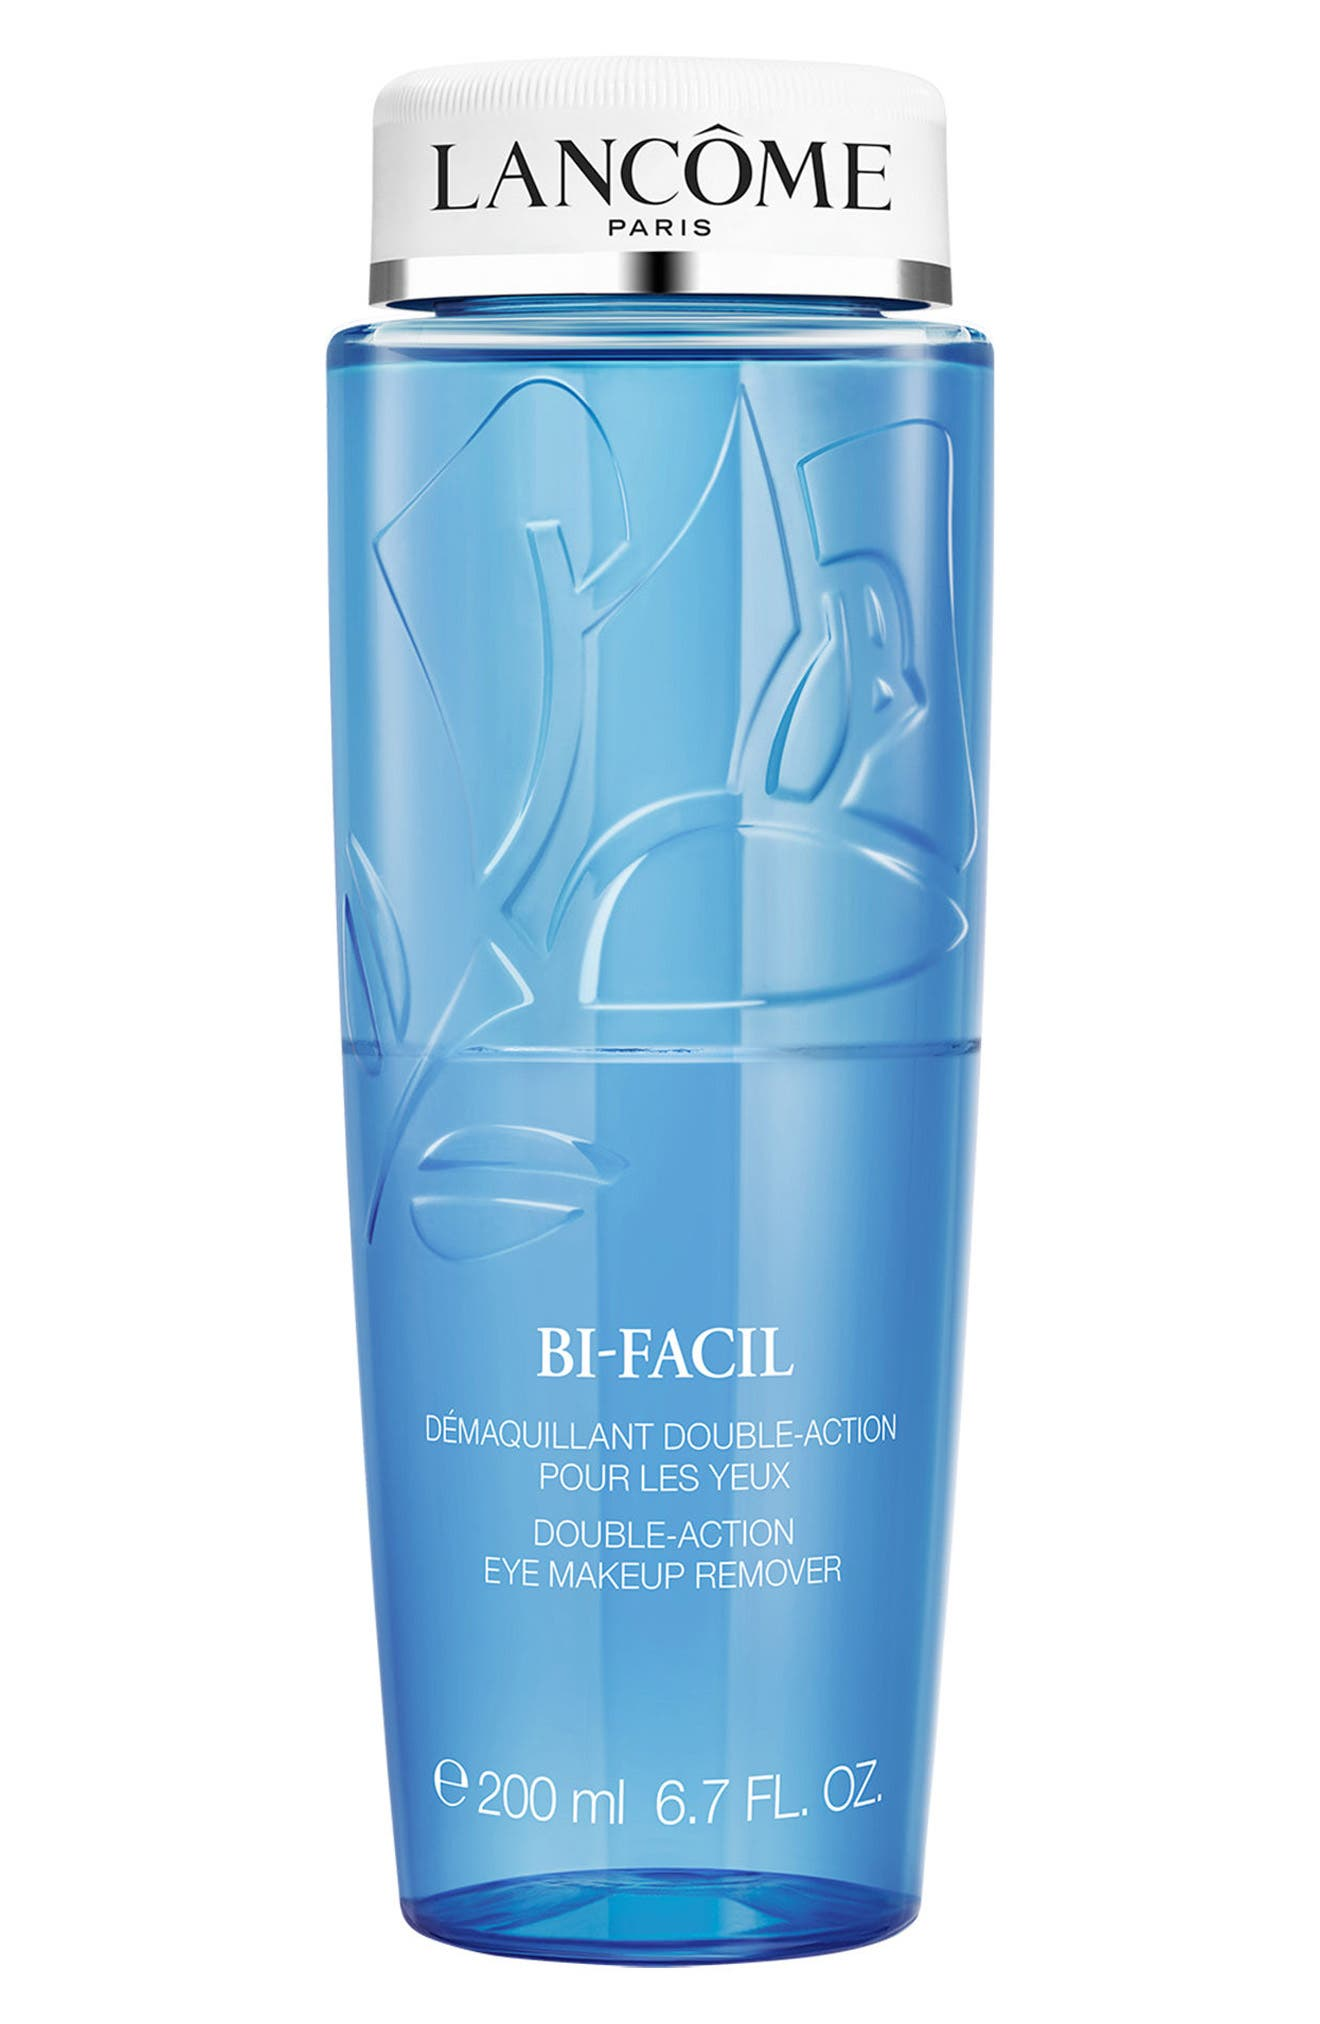 Alternate Image 1 Selected - Lancôme Bi-Facil Double-Action Eye Makeup Remover ($96 Value)